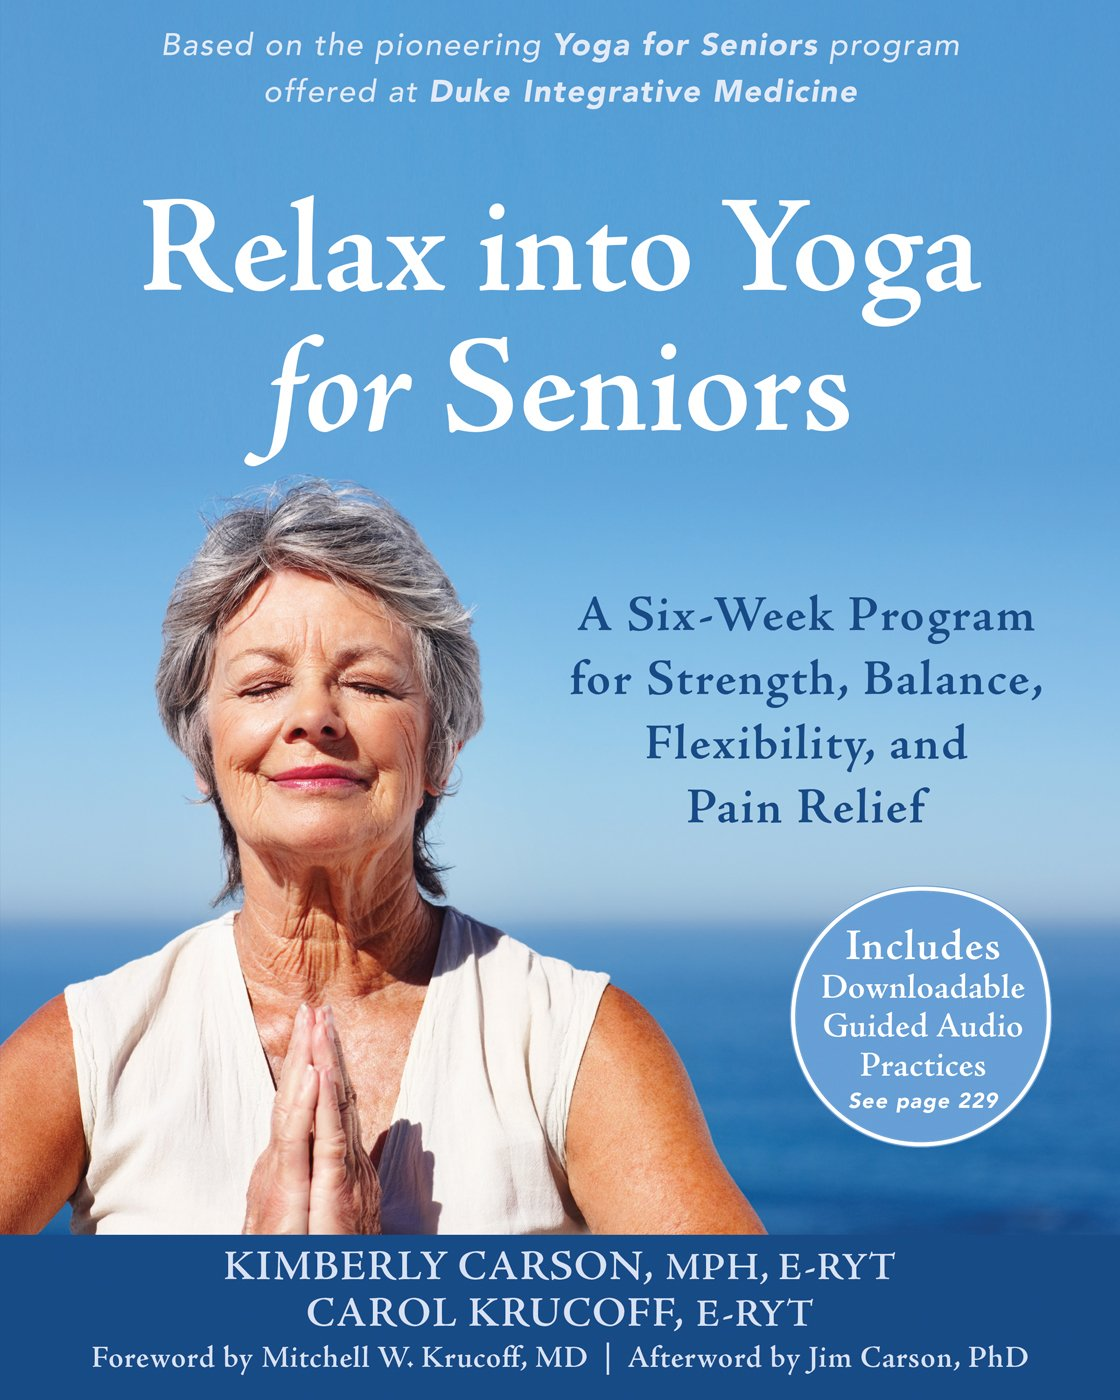 Relax Into Yoga For Seniors A Six Week Program For Strength Balance Flexibility And Pain Relief Carson Mph E Ryt Kimberly Krucoff Carol Carson Phd Jim Krucoff Md Mitchell W 9781626253643 Amazon Com Books